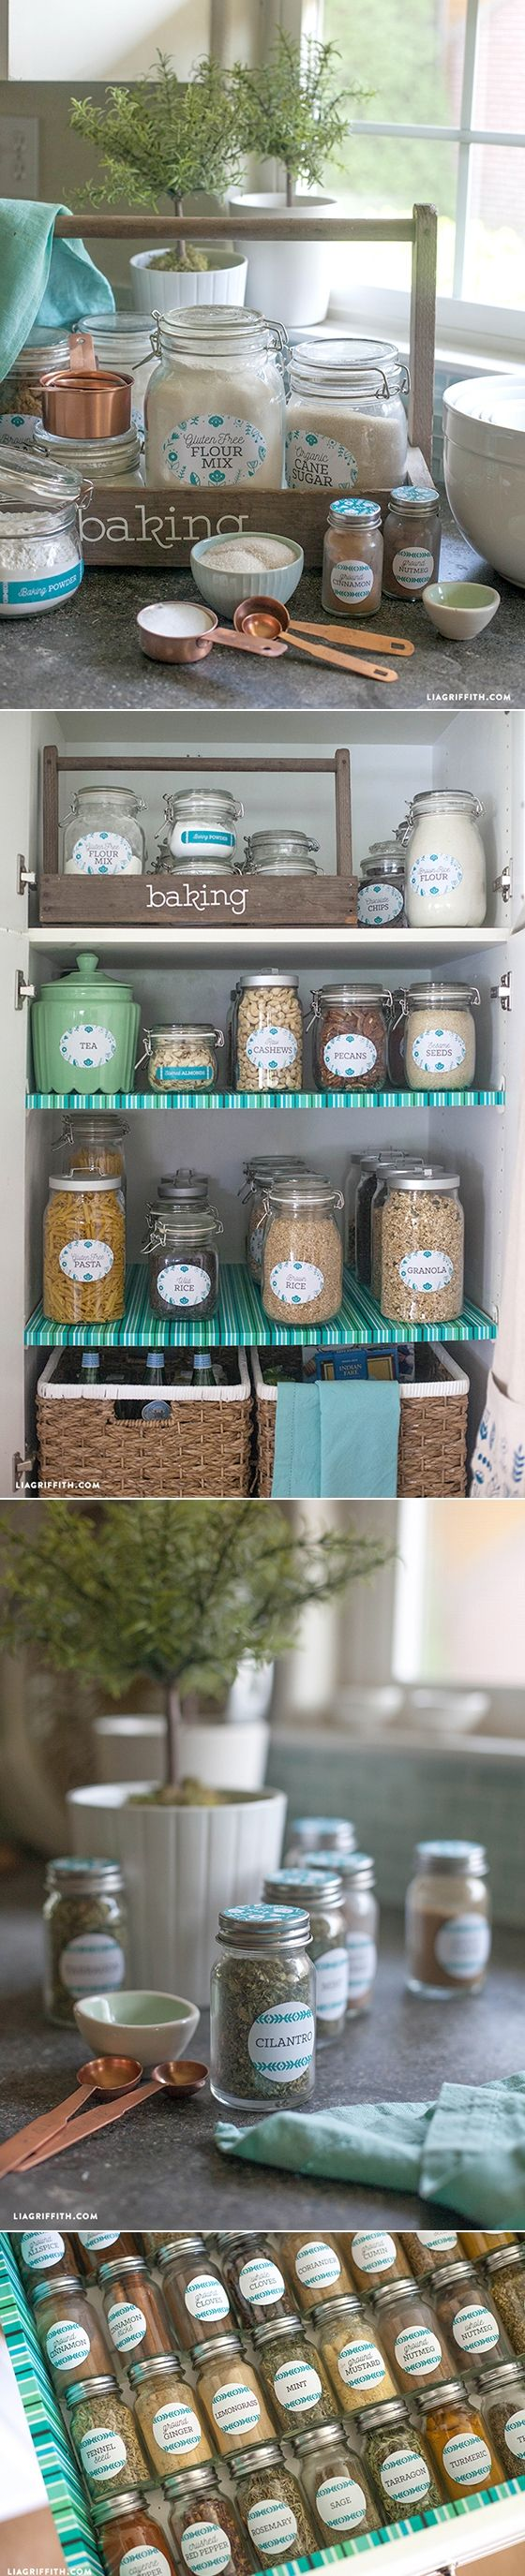 #organization #printable labels